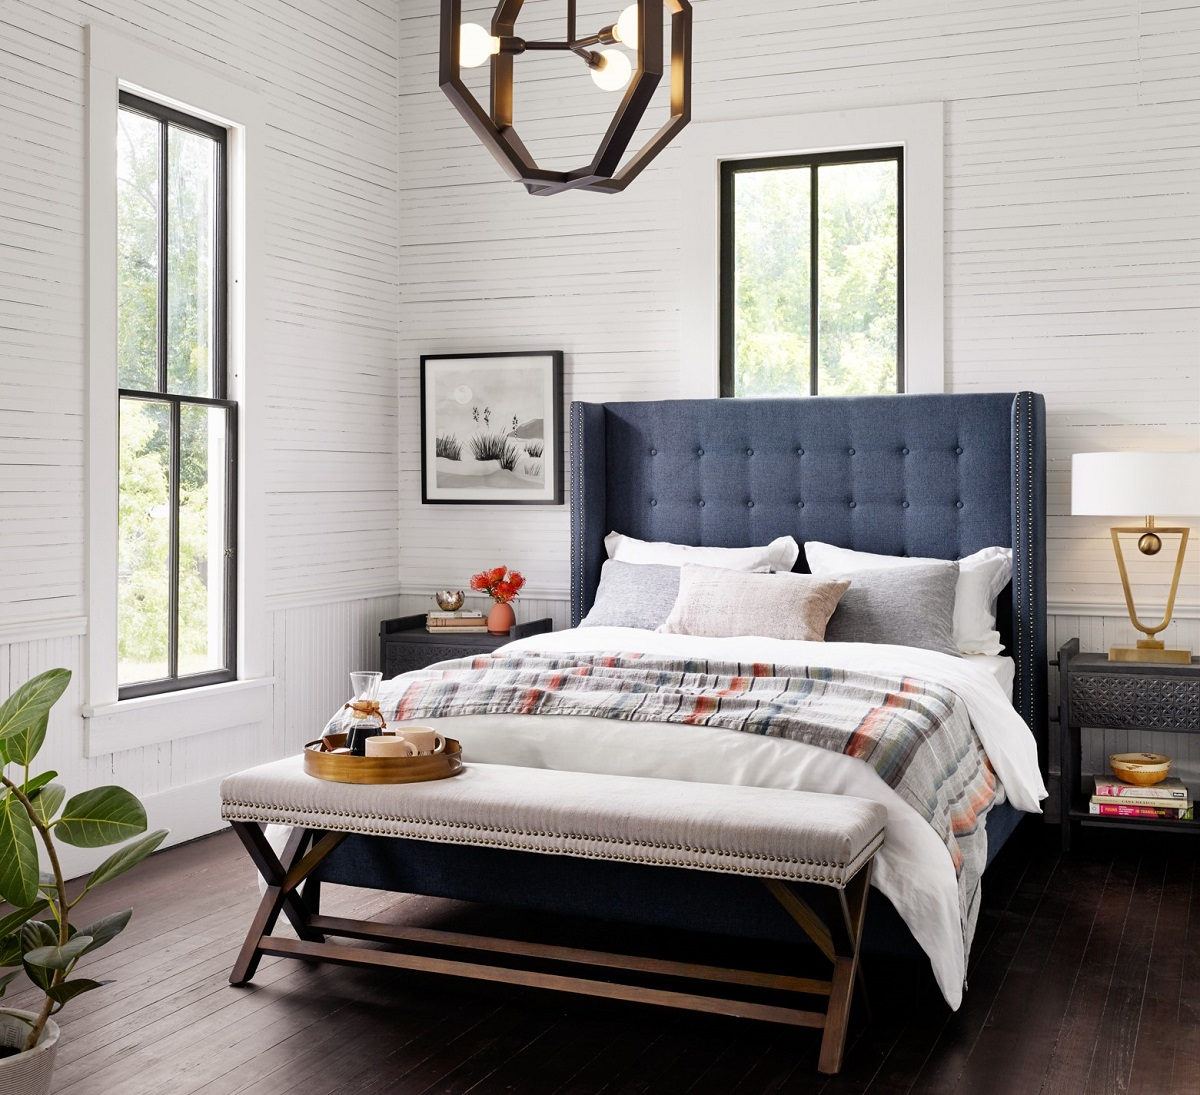 Shop The Look: Modern Farmhouse Bedroom - Zin Home